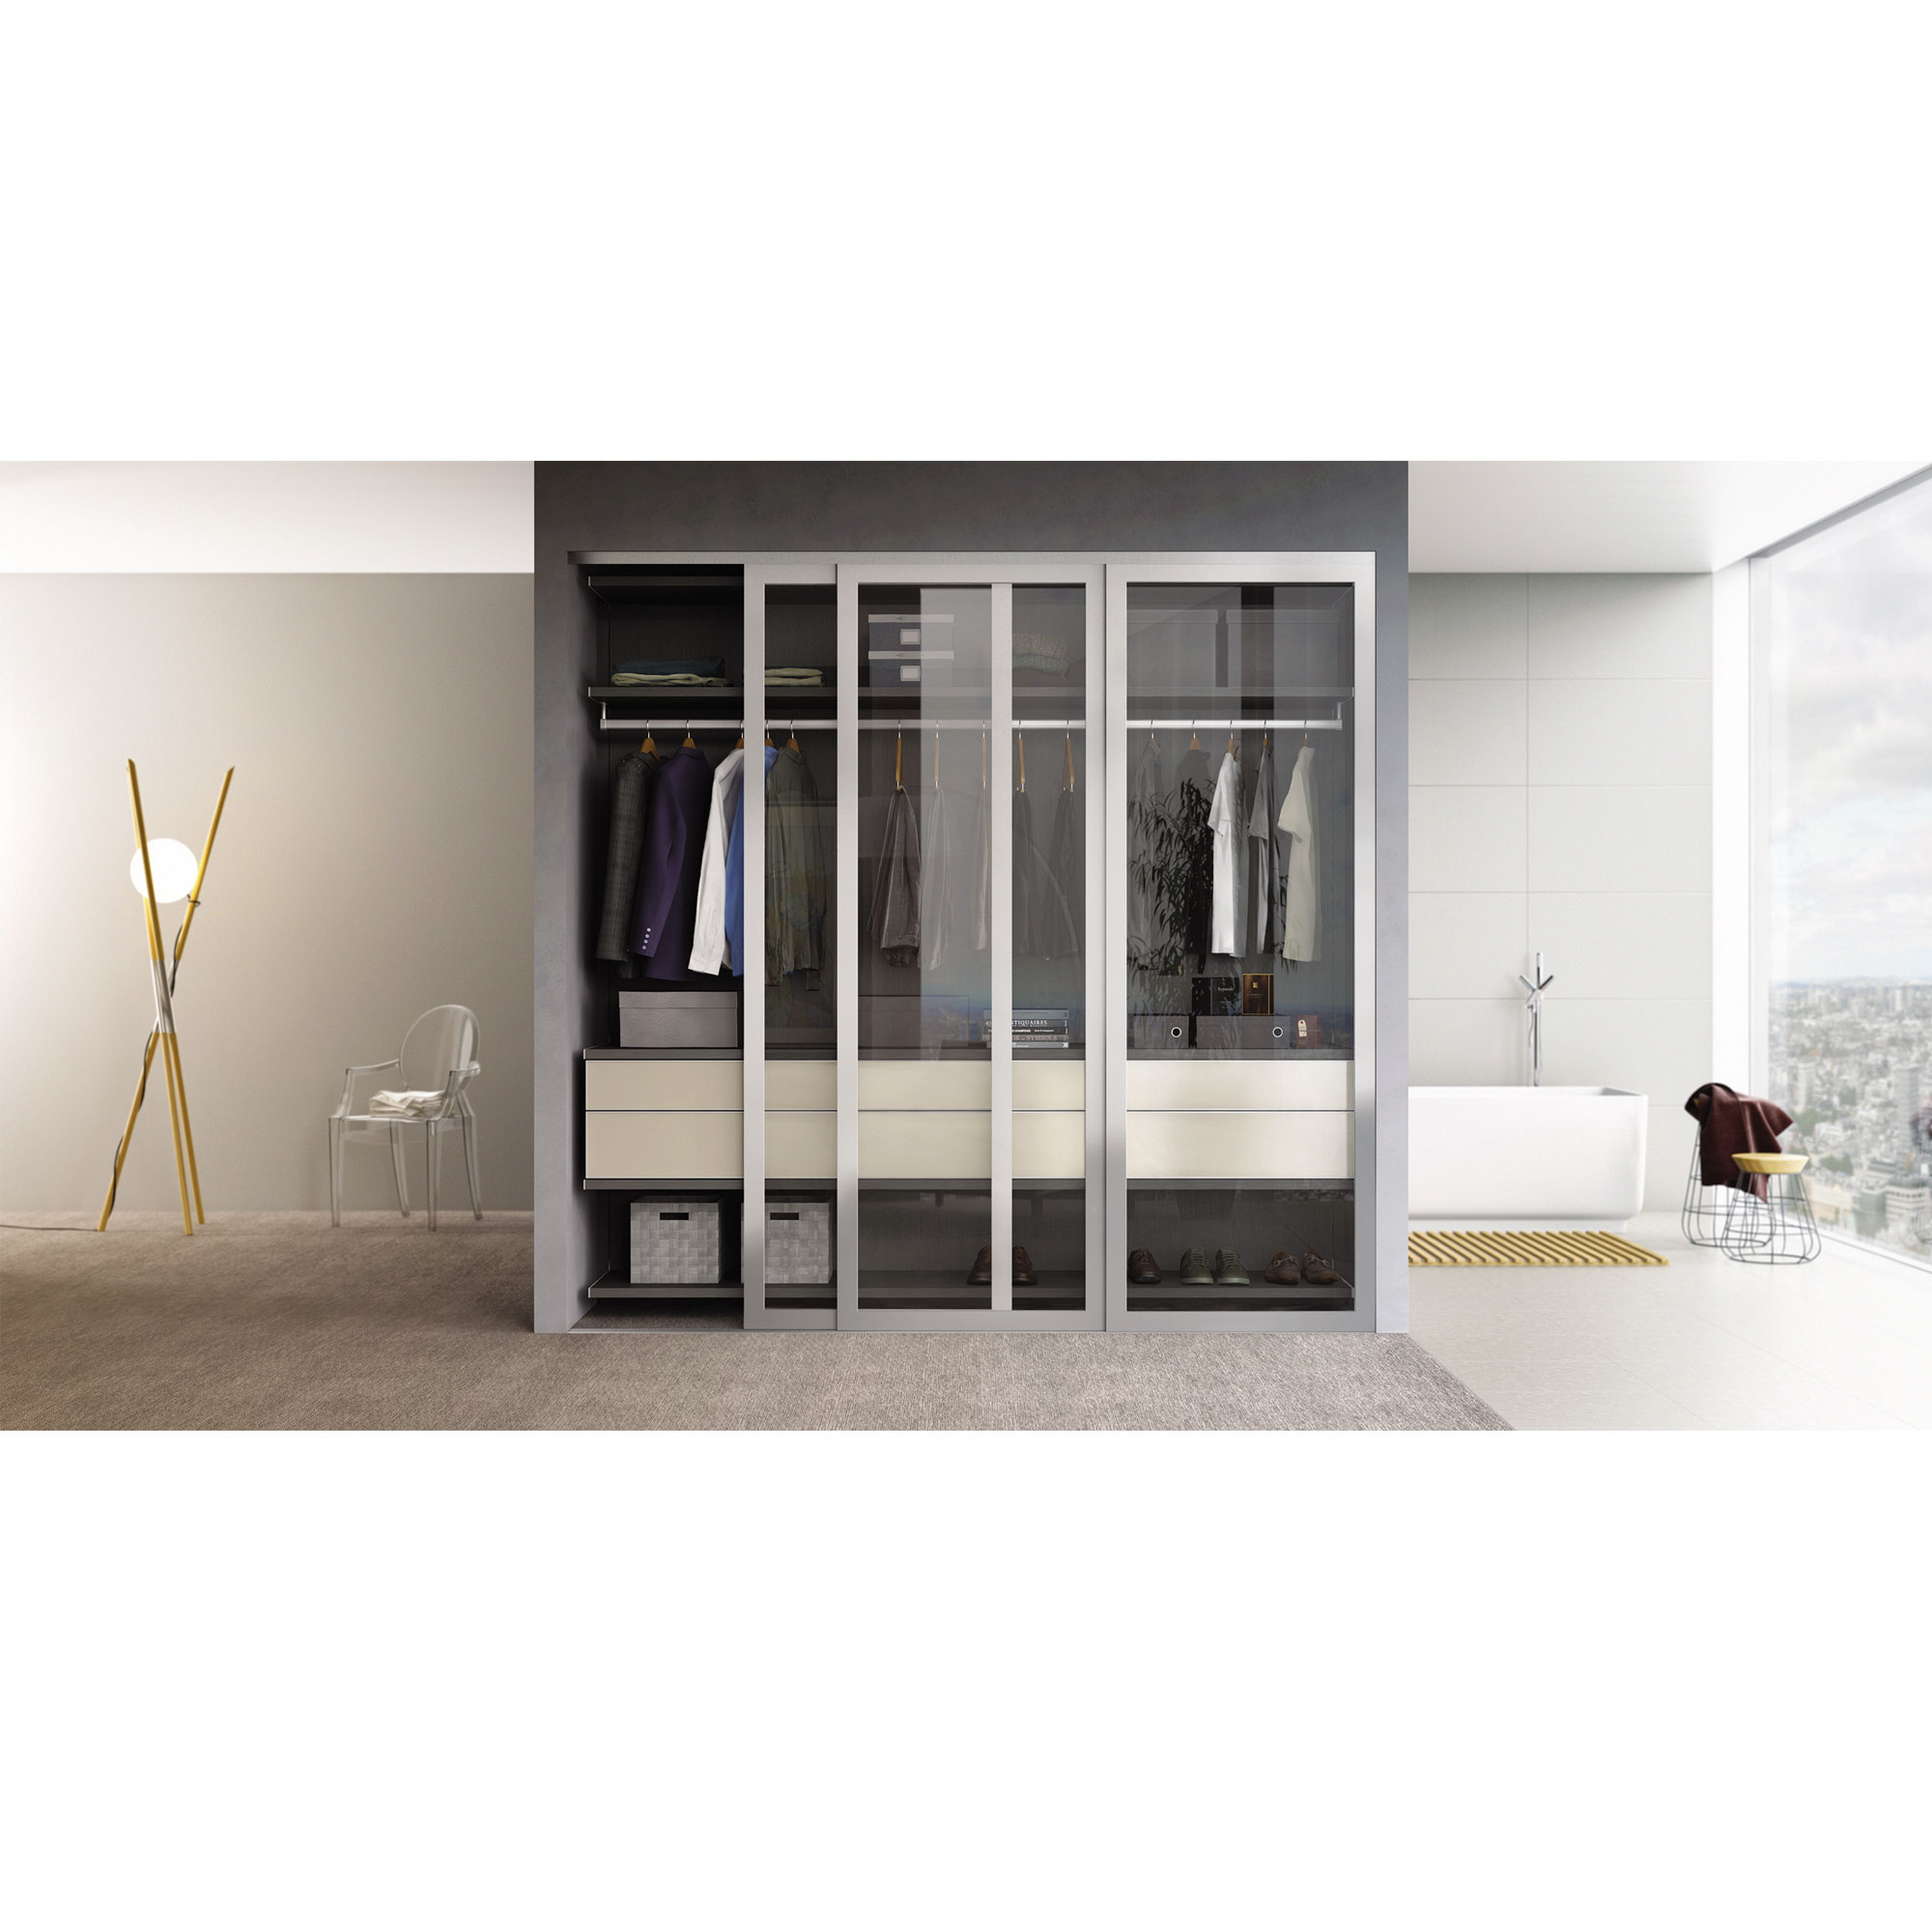 full furniture painting remove wood doors sliding closet size mirror bedroom ikea of glass rona ashley